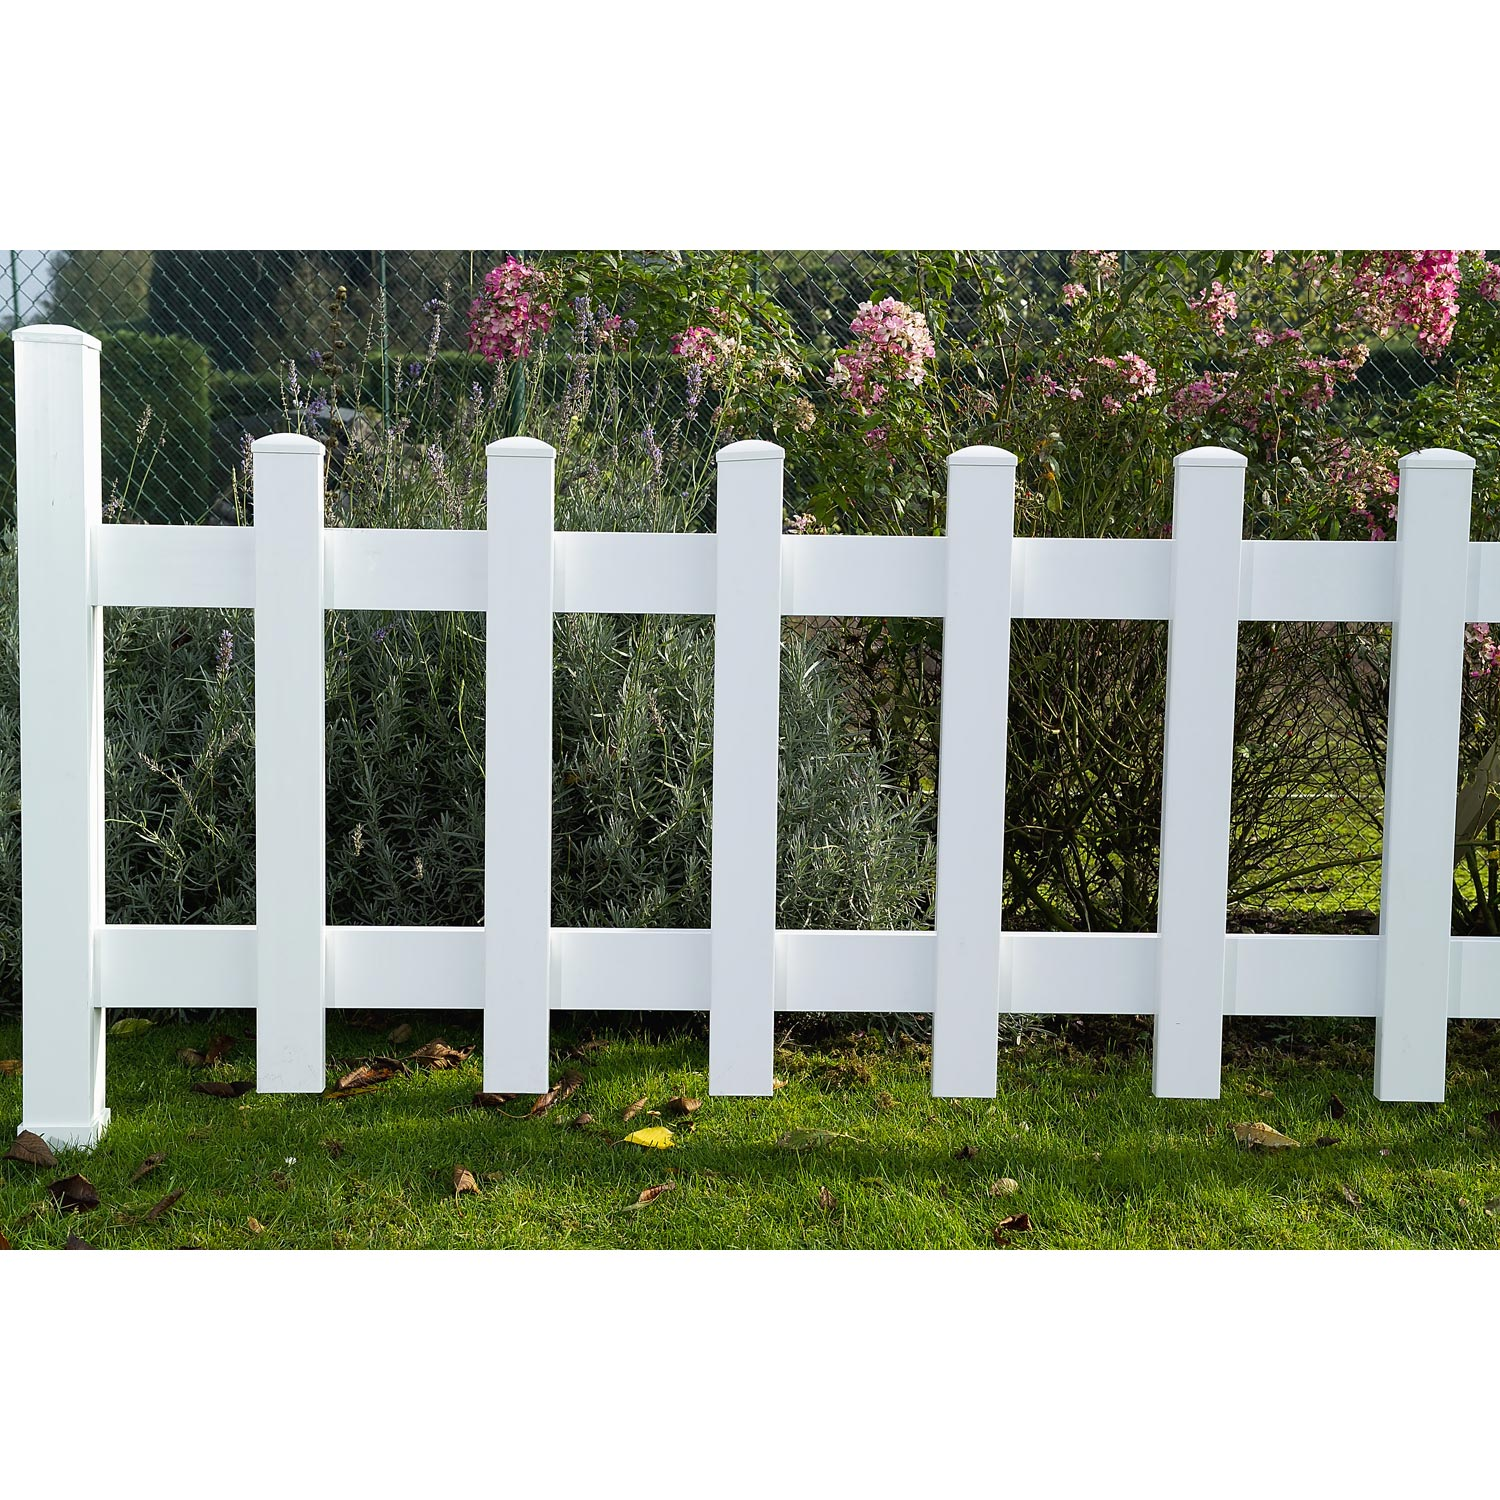 Balustre pour cl ture de 80 cm leroy merlin for Grillage et portillon de jardin